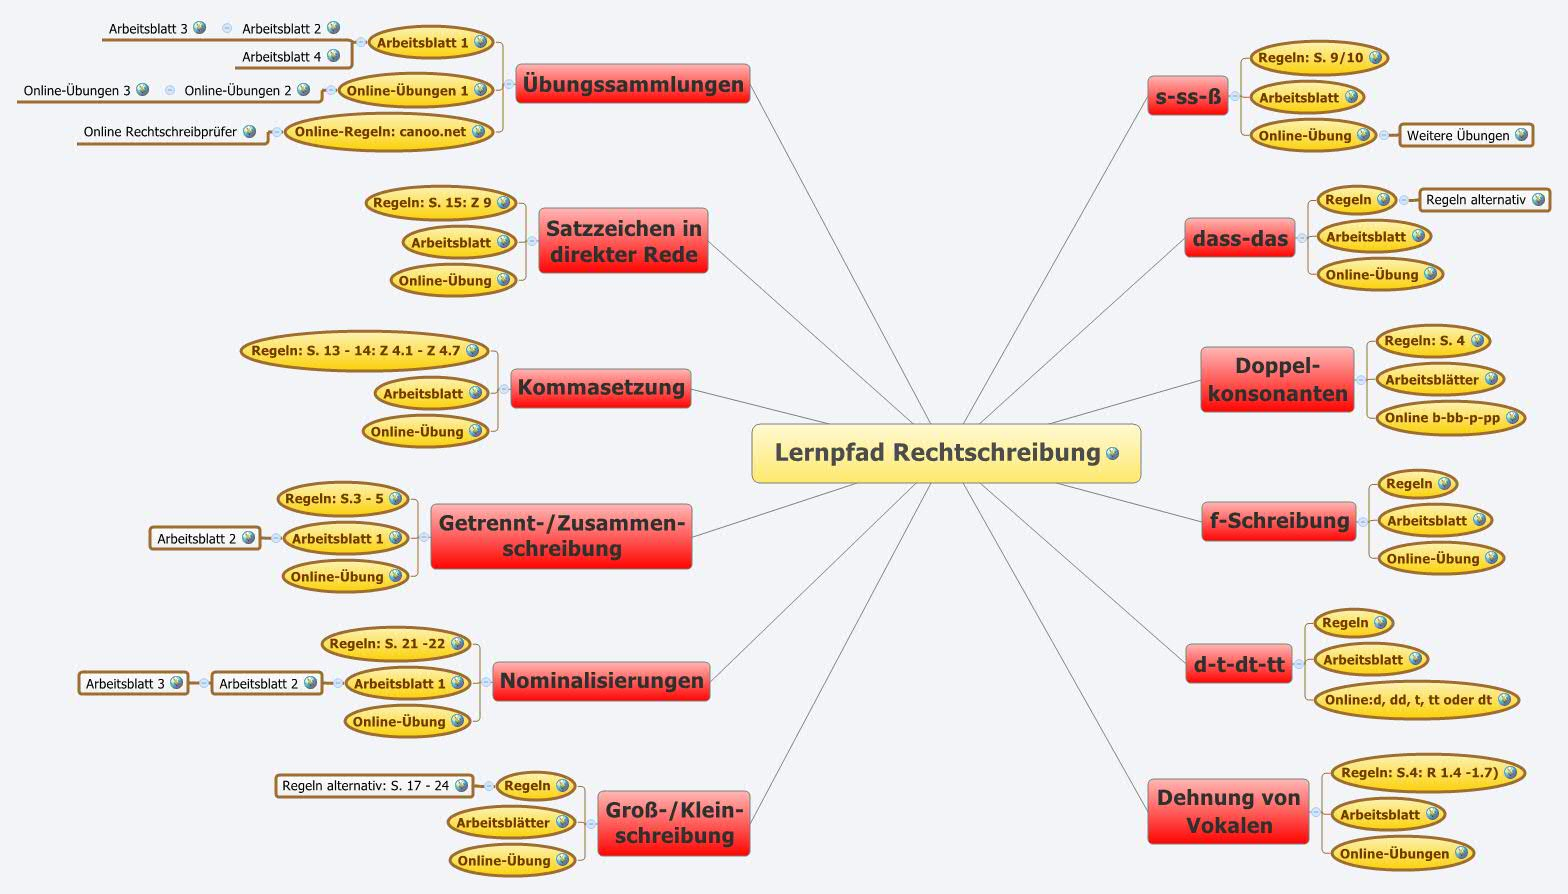 Lernpfad Rechtschreibung - XMind: The Most Popular Mind Mapping ...